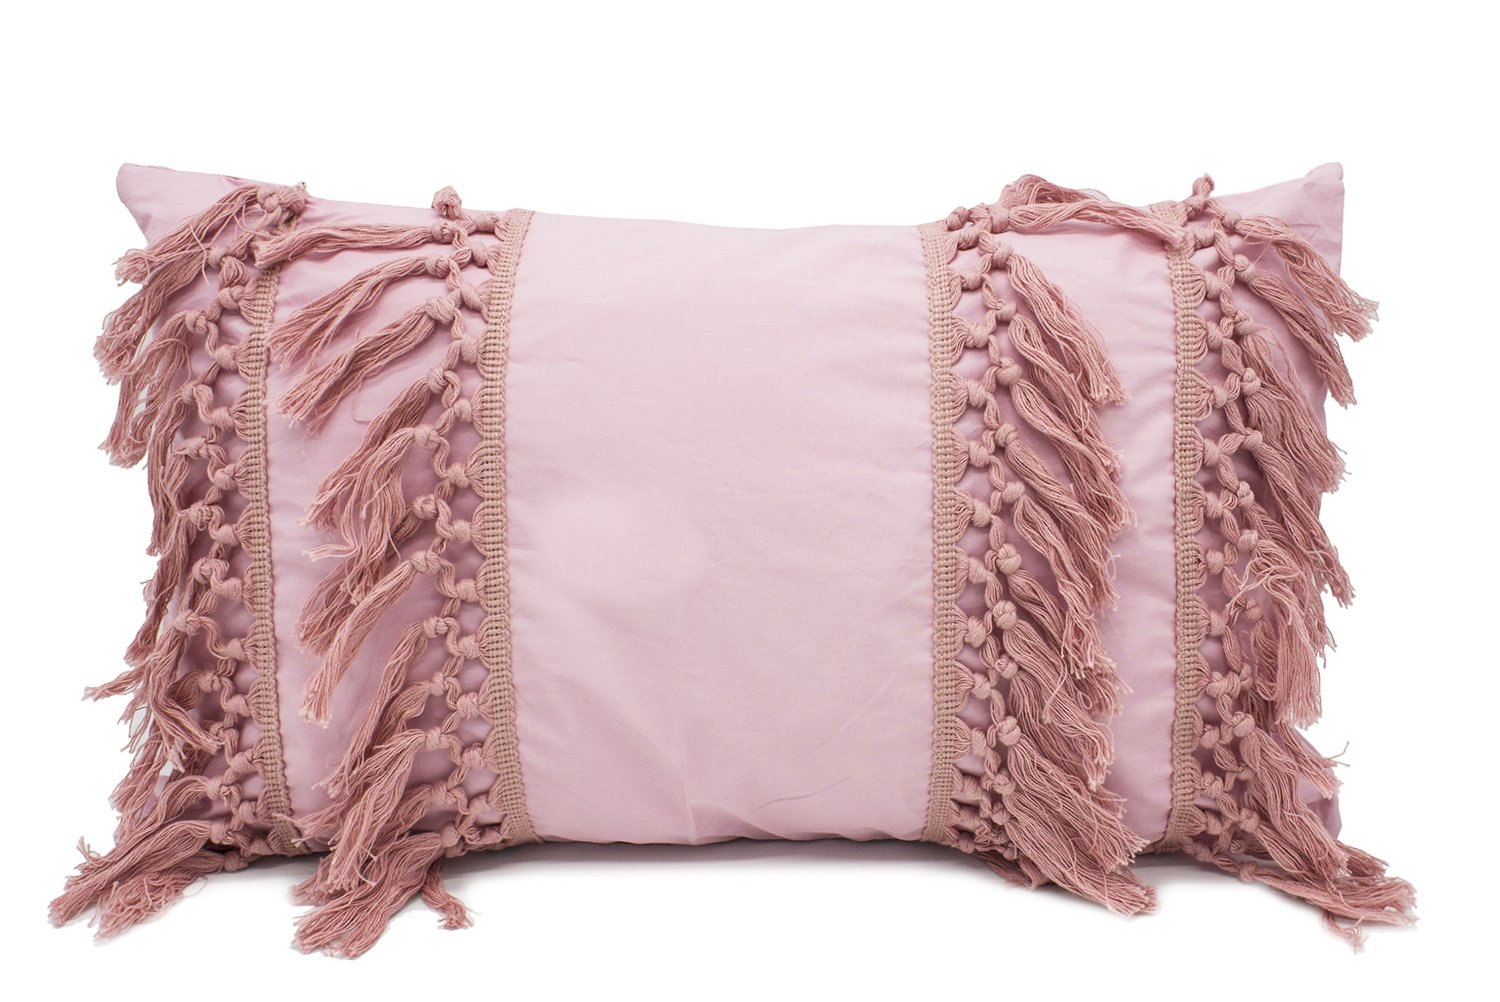 "Fennco Styles Stylish Fringe Tassels Decorative Cotton Throw Pillow (Pink, 12""x20"" Case Only) - Add a stylish and modern look to your living space with this Stripe Print Tassel Fringe Throw Pillow from Fennco Styles The horizontal tassels are sure to liven up your home settings and gives your decor a playful appeal. Mix and match this pillow with your sofa, chair and day bed for some much-needed comfort and a style. The durable cotton and easy to maintain machine wash makes cleaning this pillow a breeze. Size: 18"" W x 18"" L, 12"" W x 20"" L - living-room-soft-furnishings, living-room, decorative-pillows - 71I4pPJQwkL -"